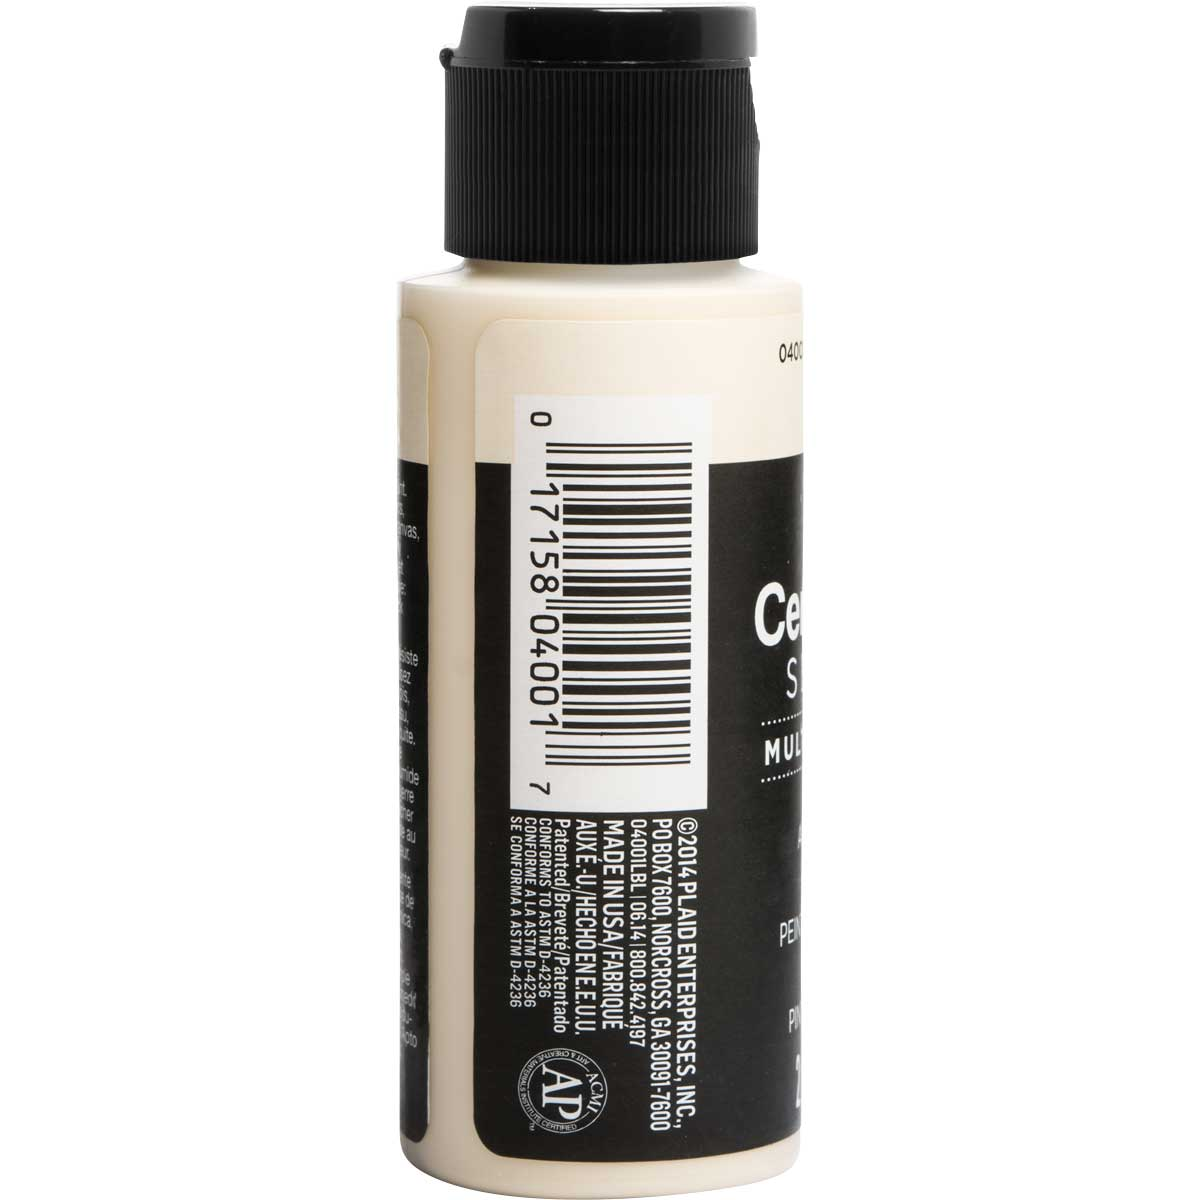 Delta Ceramcoat ® Select Multi-Surface Acrylic Paint - Satin - Ivory, 2 oz. - 04001